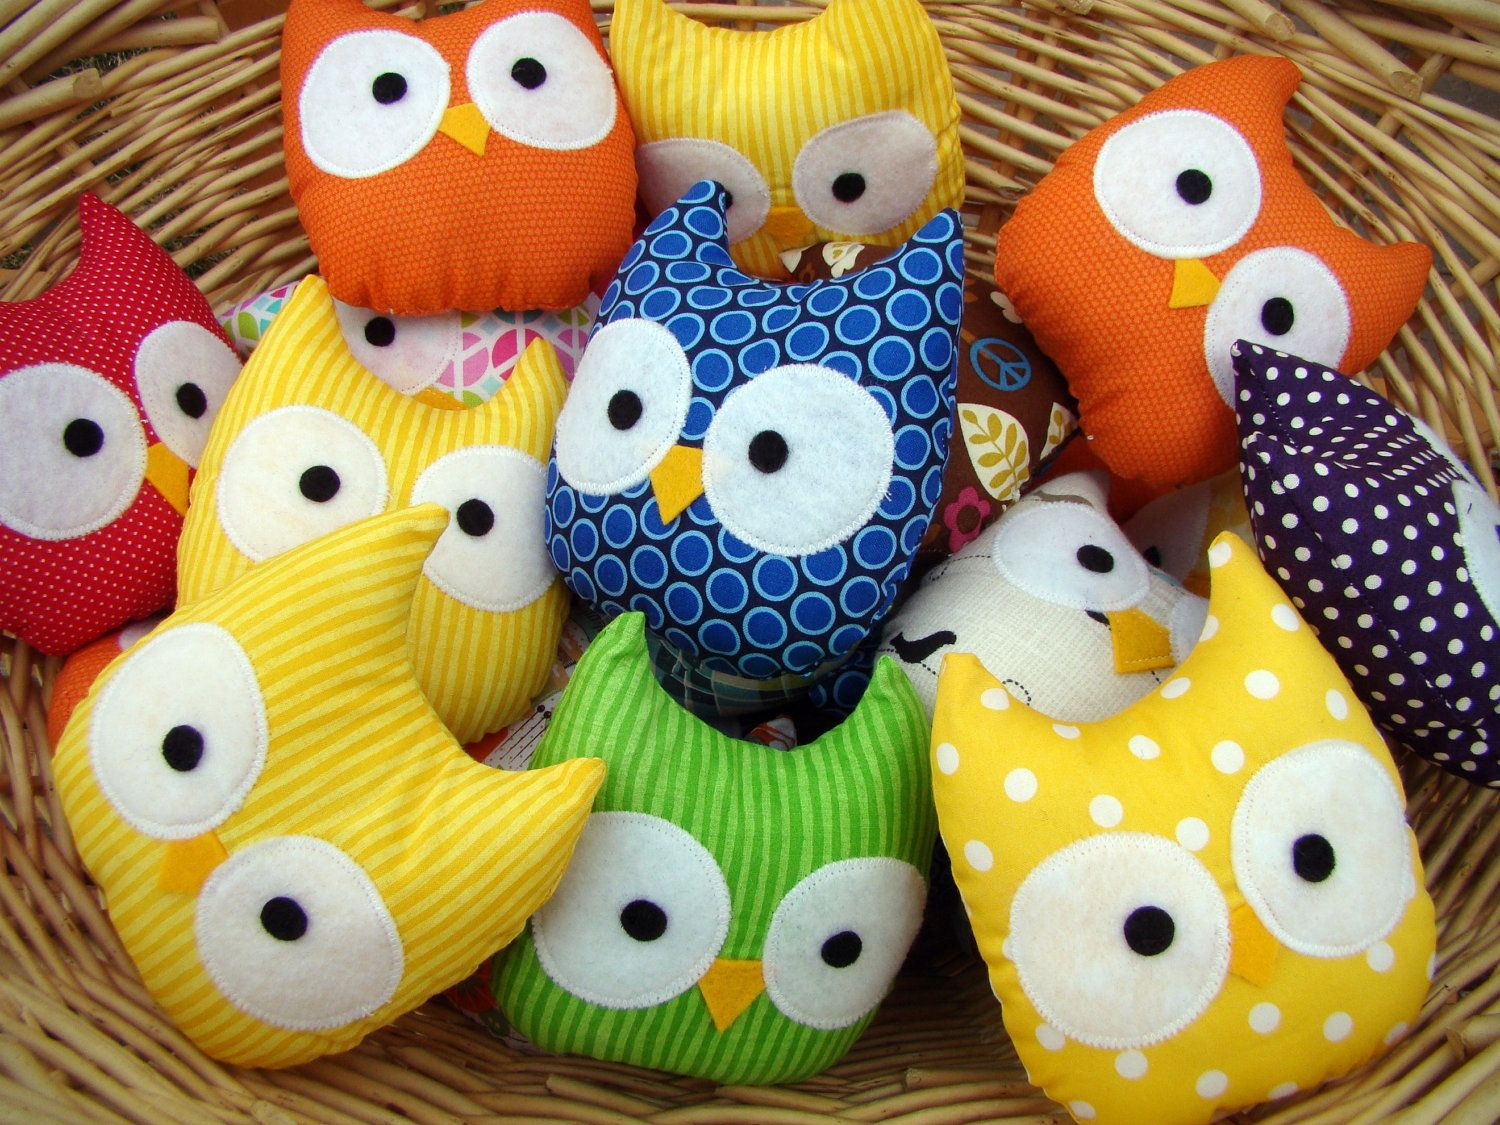 Stuff Owl Mini Stuffed Owls I ʅღɣҽ Owls Ӈ ƬЄƦƧ Owl Owl